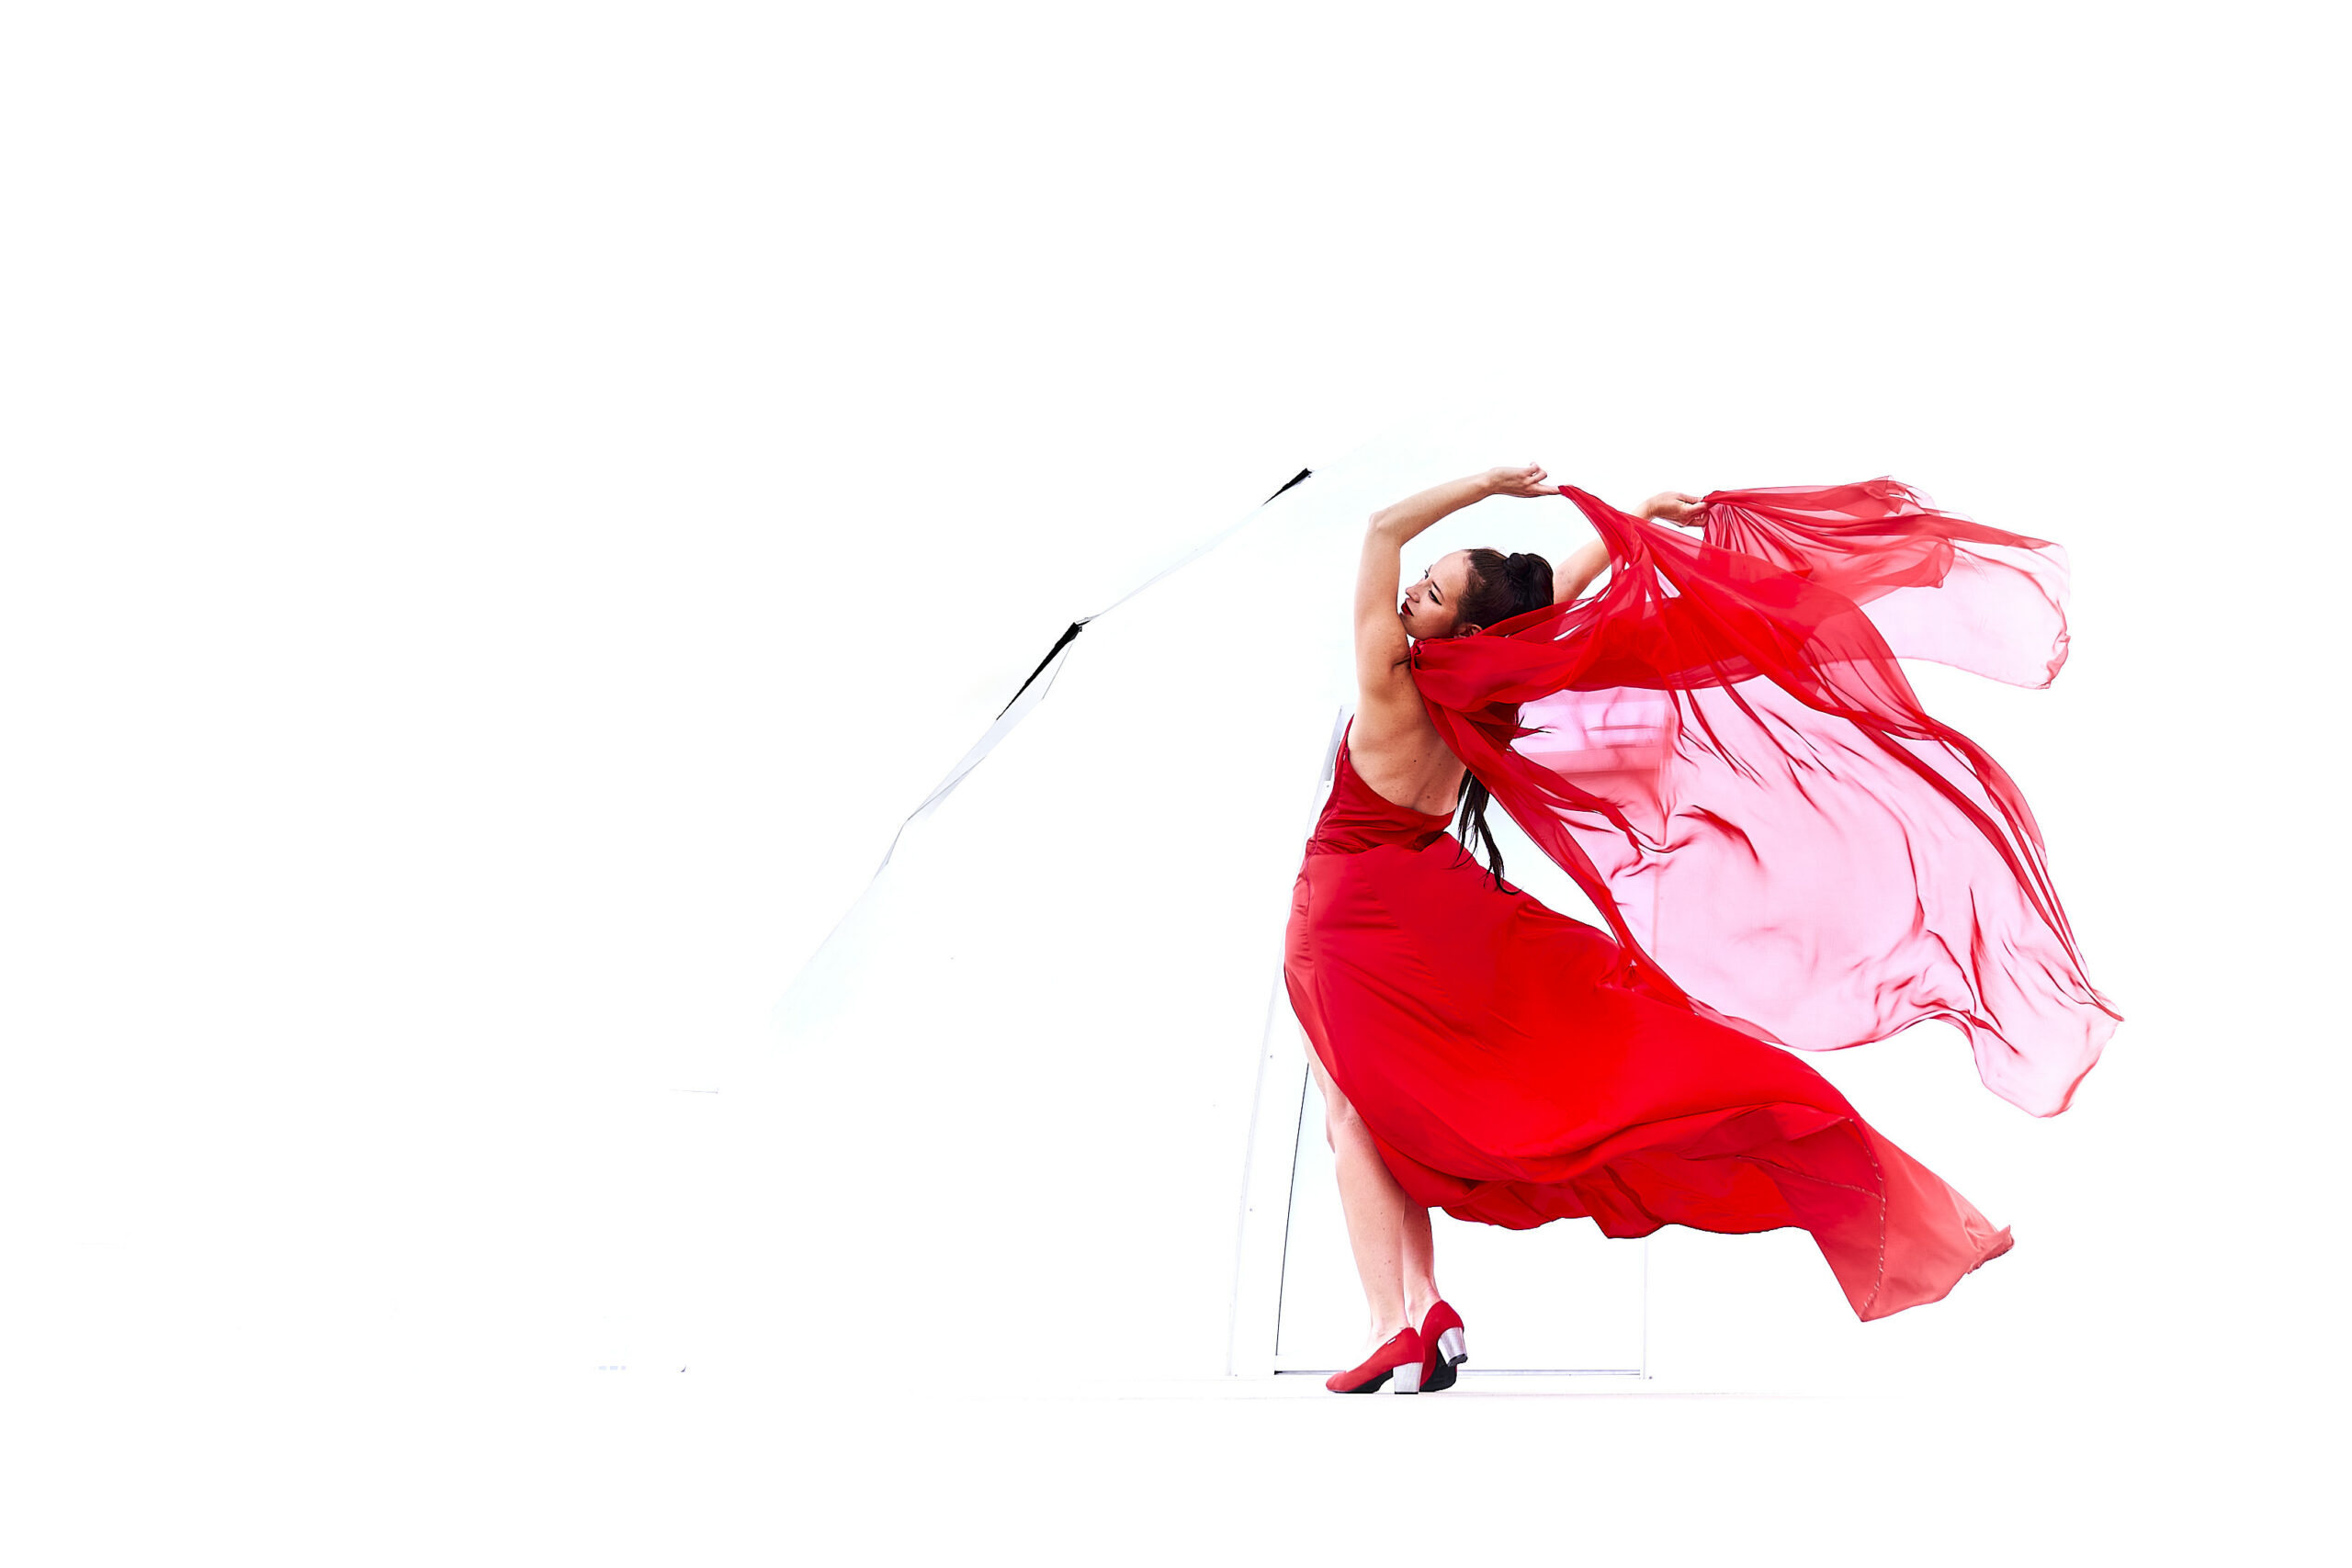 LADY IN RED I EYRISE